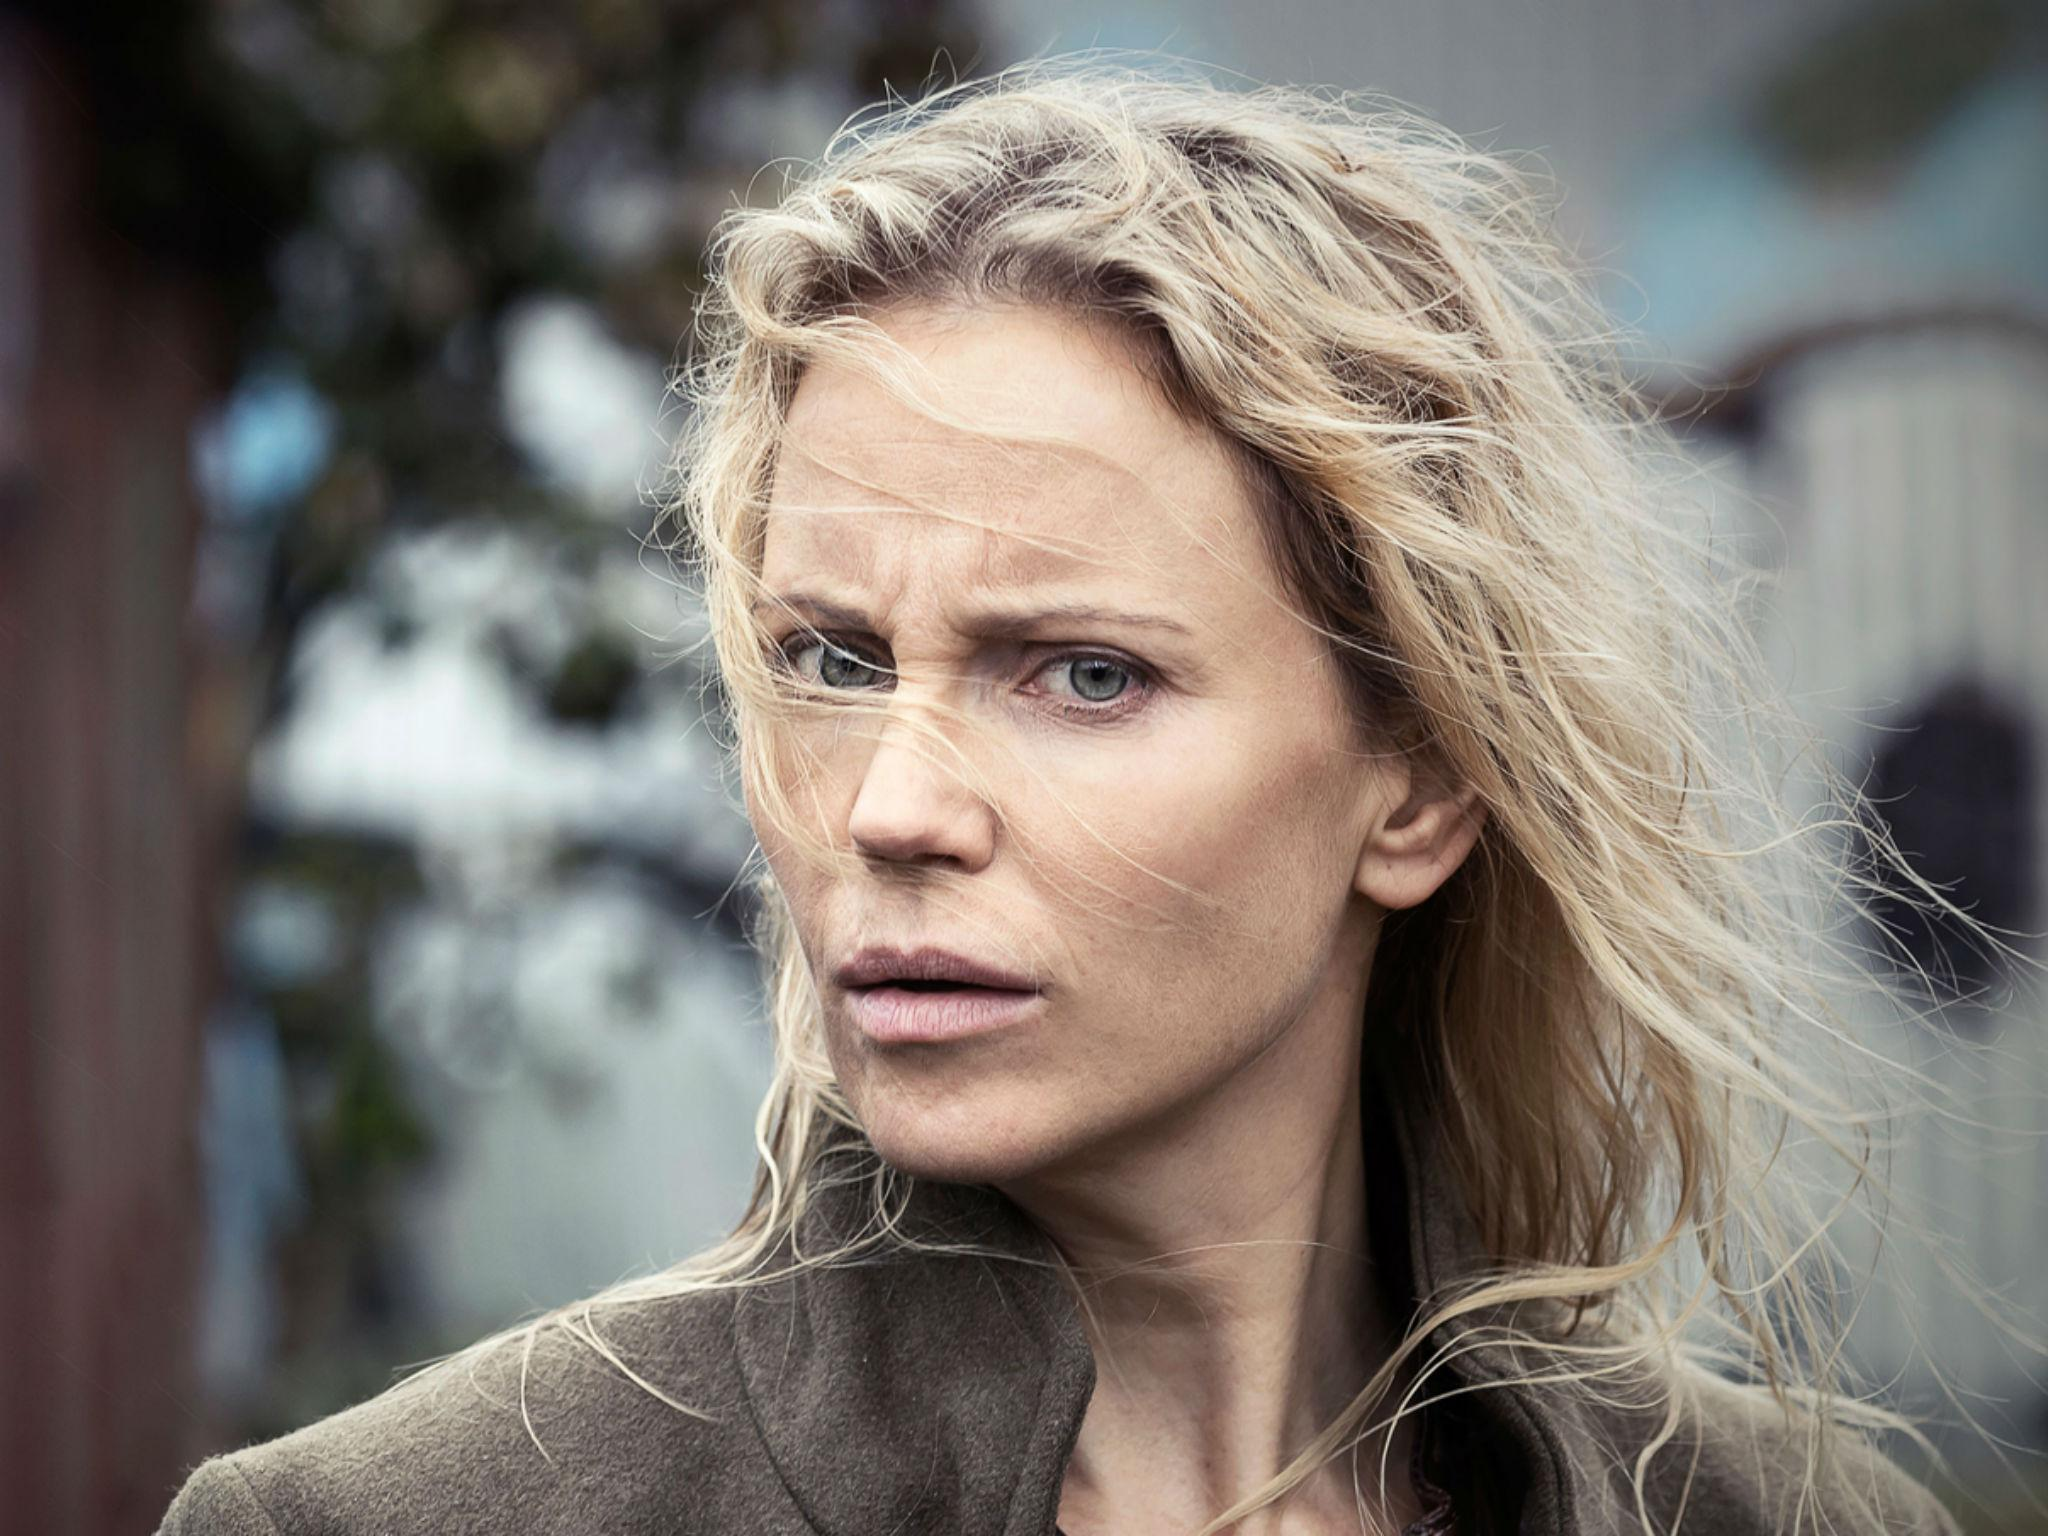 The Bridge star Sofia Helin always found people like Saga Noren rude and unpleasant before I played her